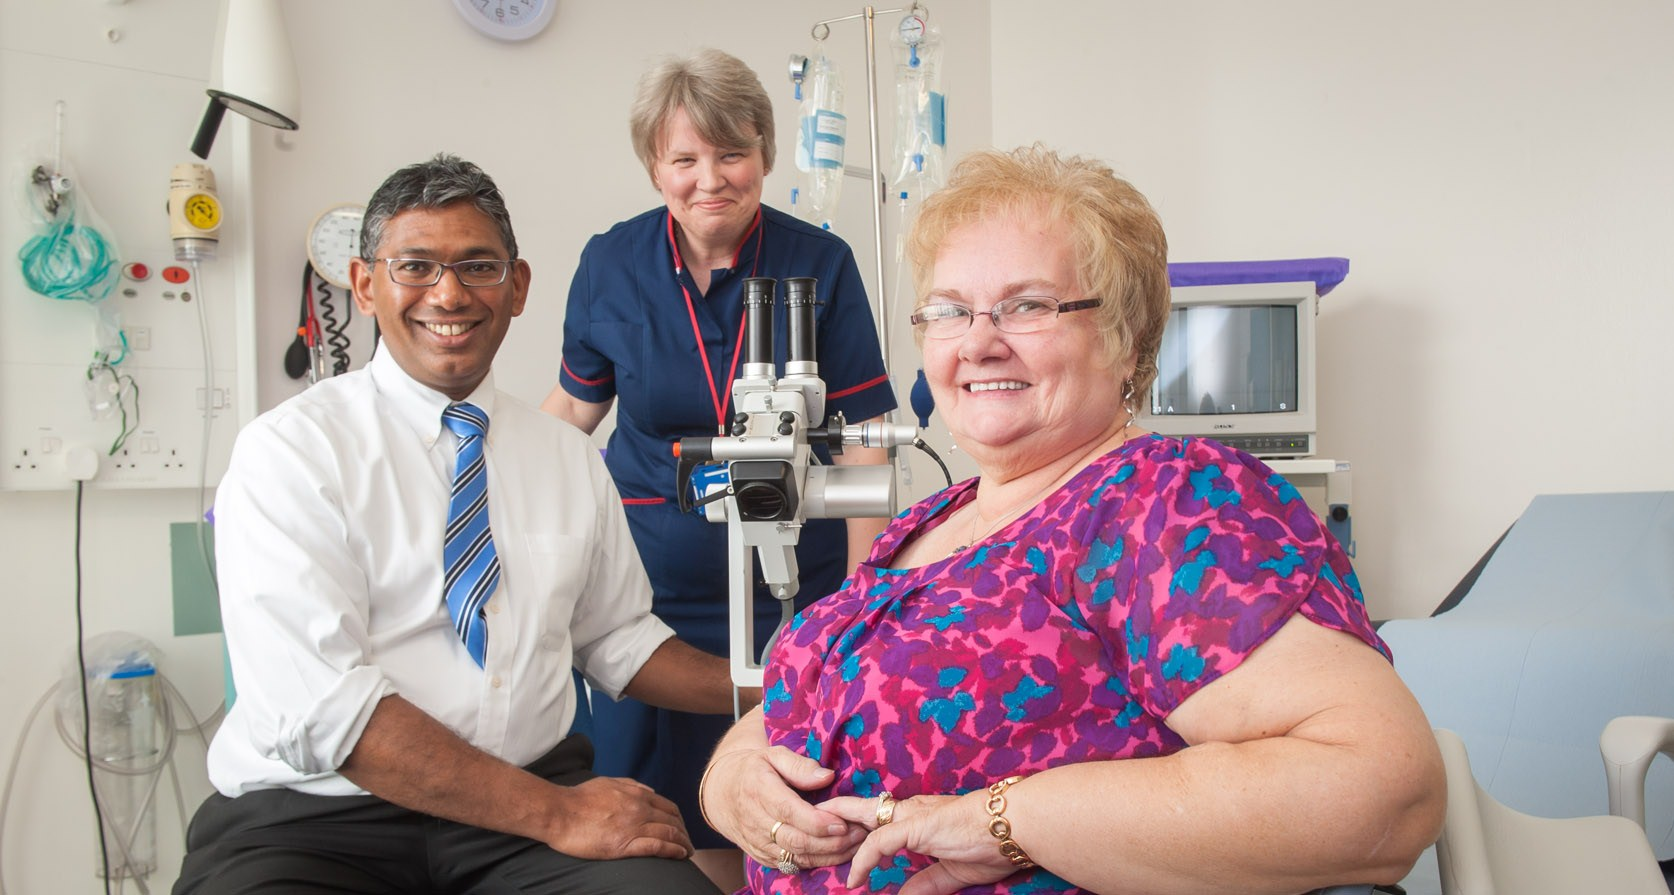 NEW 'ONE STOP SHOP' CLINIC FOR GYNAECOLOGICAL TREATMENT AVAILABLE AT CHESTER-LE-STREET COMMUNITY HOSPITAL